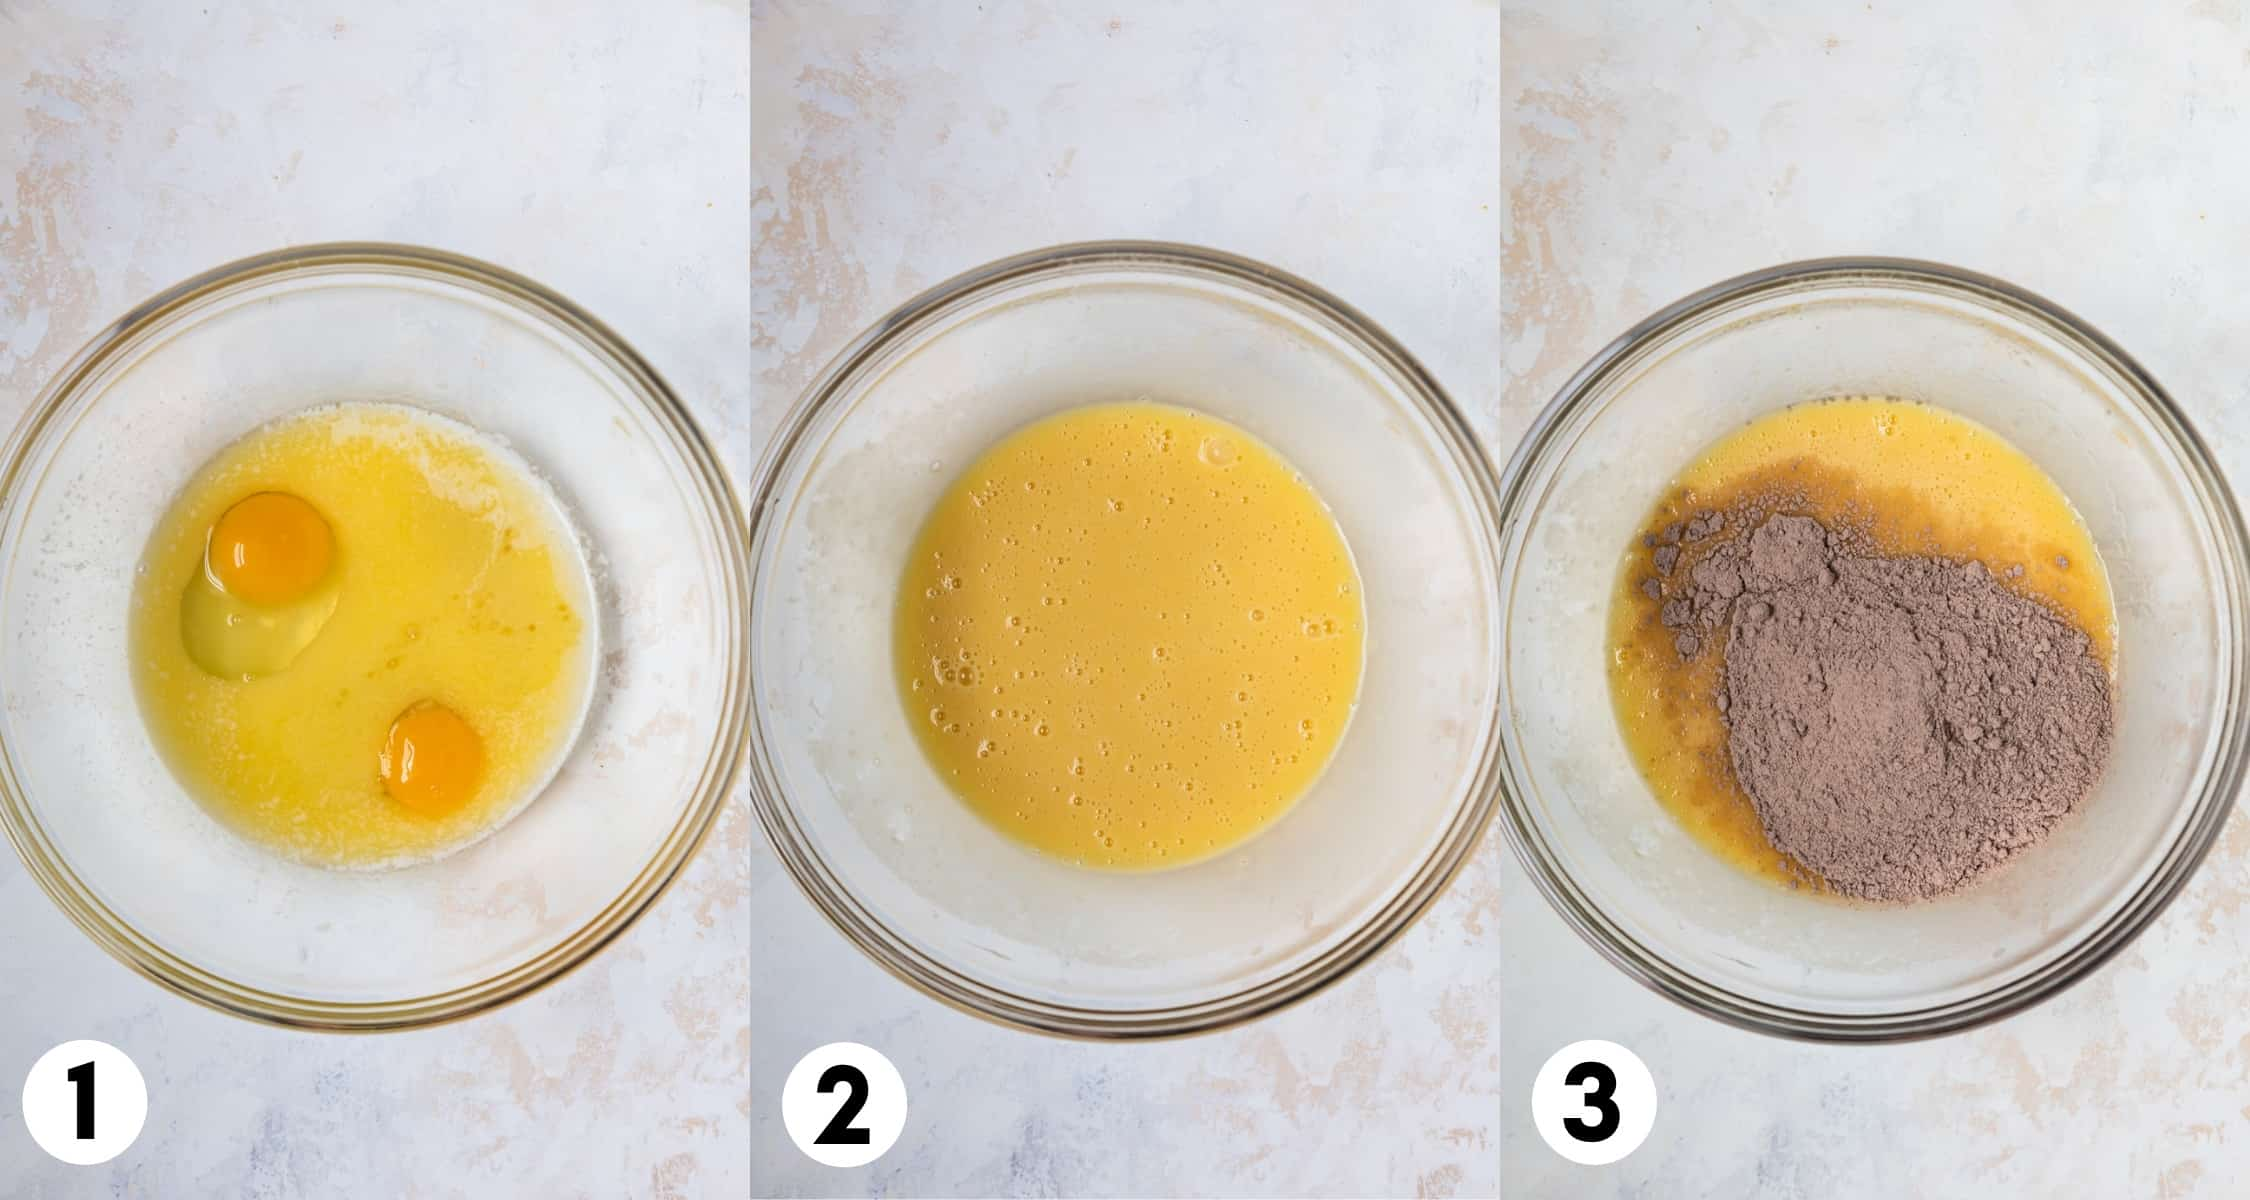 Steps to make cake mix cookies showing ingredients in each mixing bowl as added.